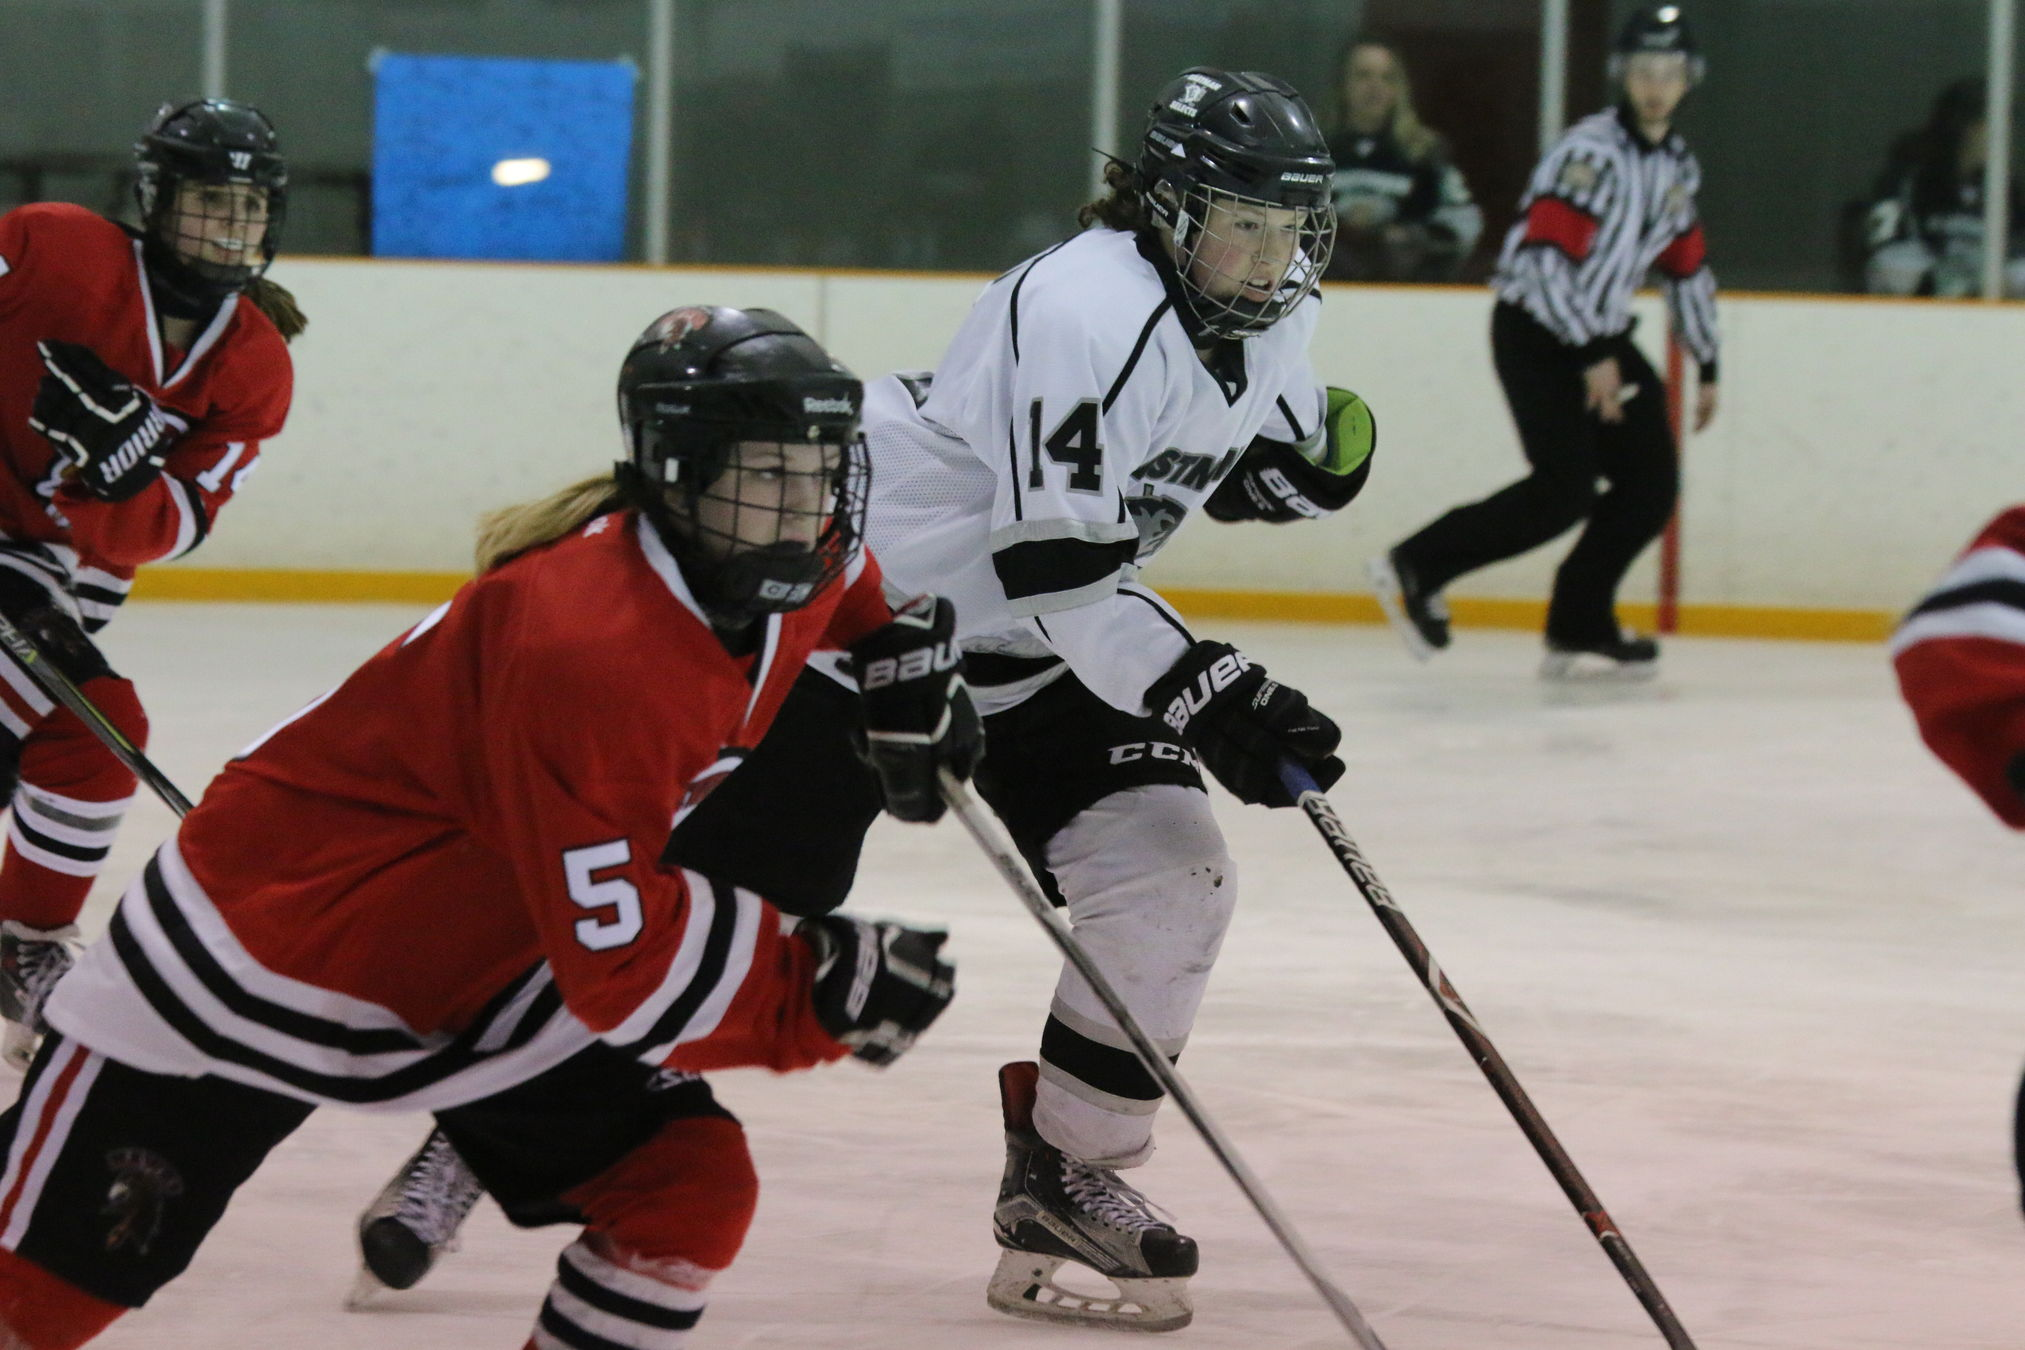 The Eastman Selects can win their first-ever Manitoba Female Midget Hockey League championship Wednesday at Ste. Anne with a victory over the Pembina Valley Hawks. Game time is 7:45 p.m. The Selects lead the best of 5 series 2-1.